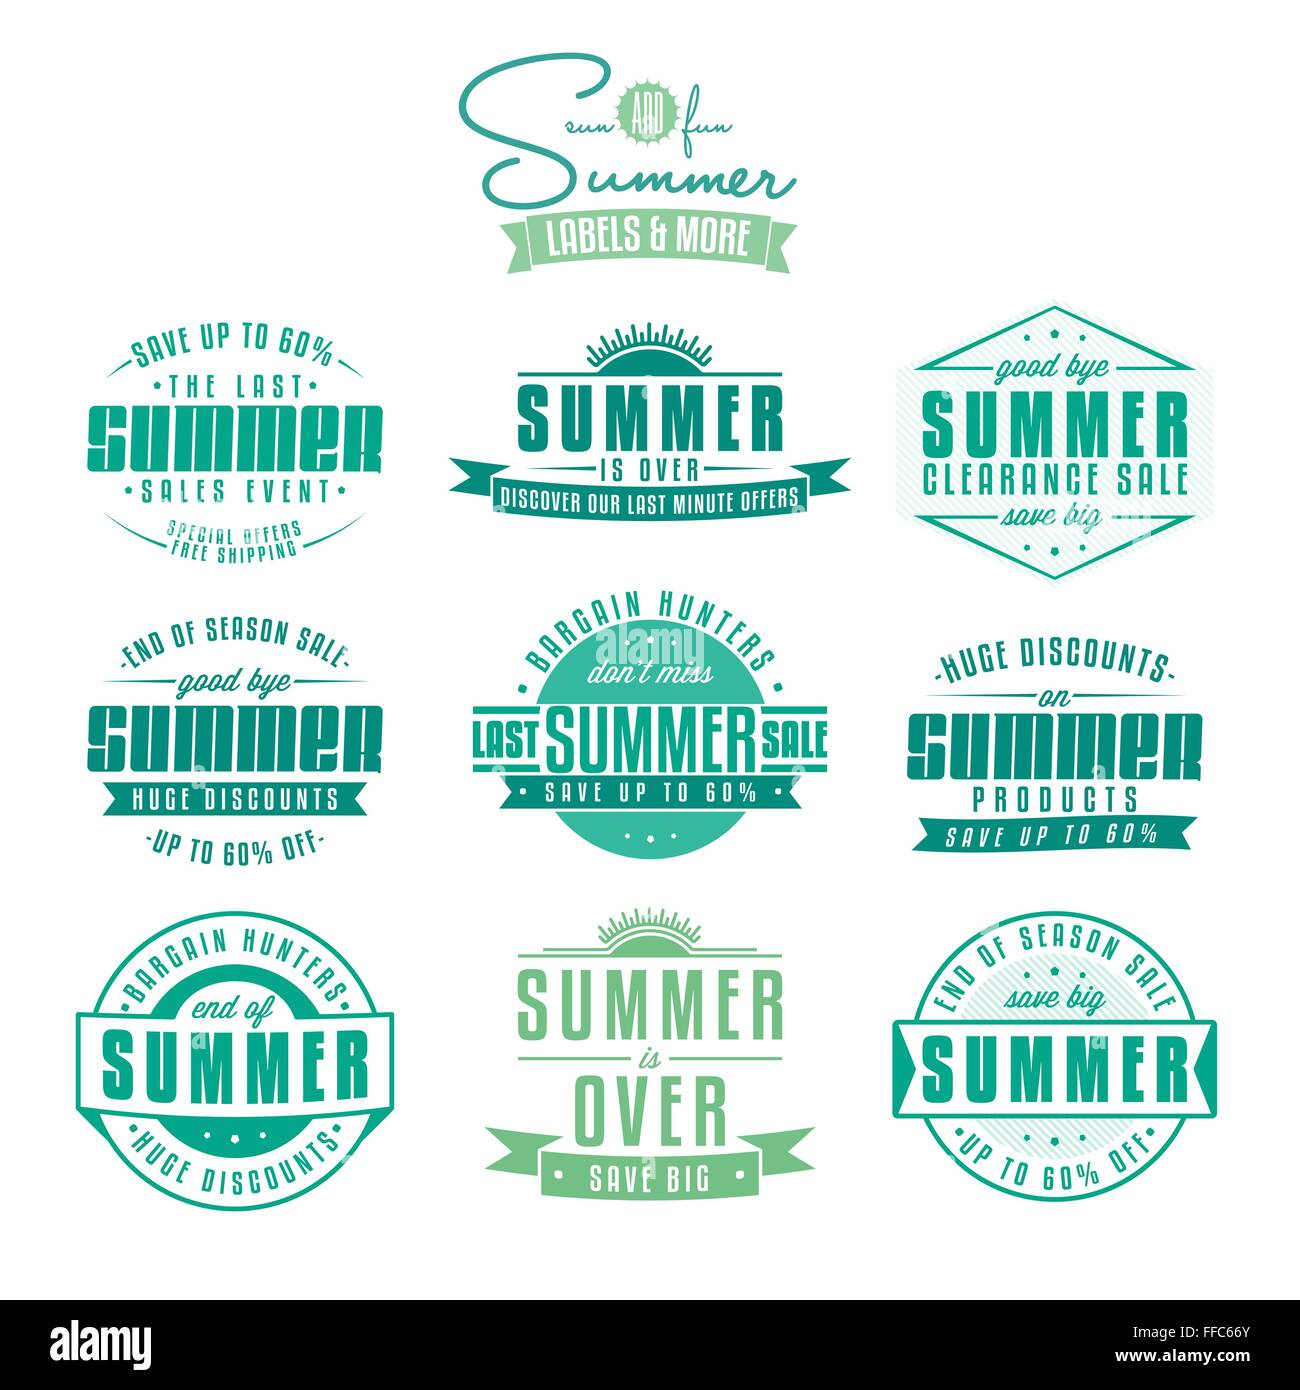 Collection of summer sales related vintage labels - Stock Image